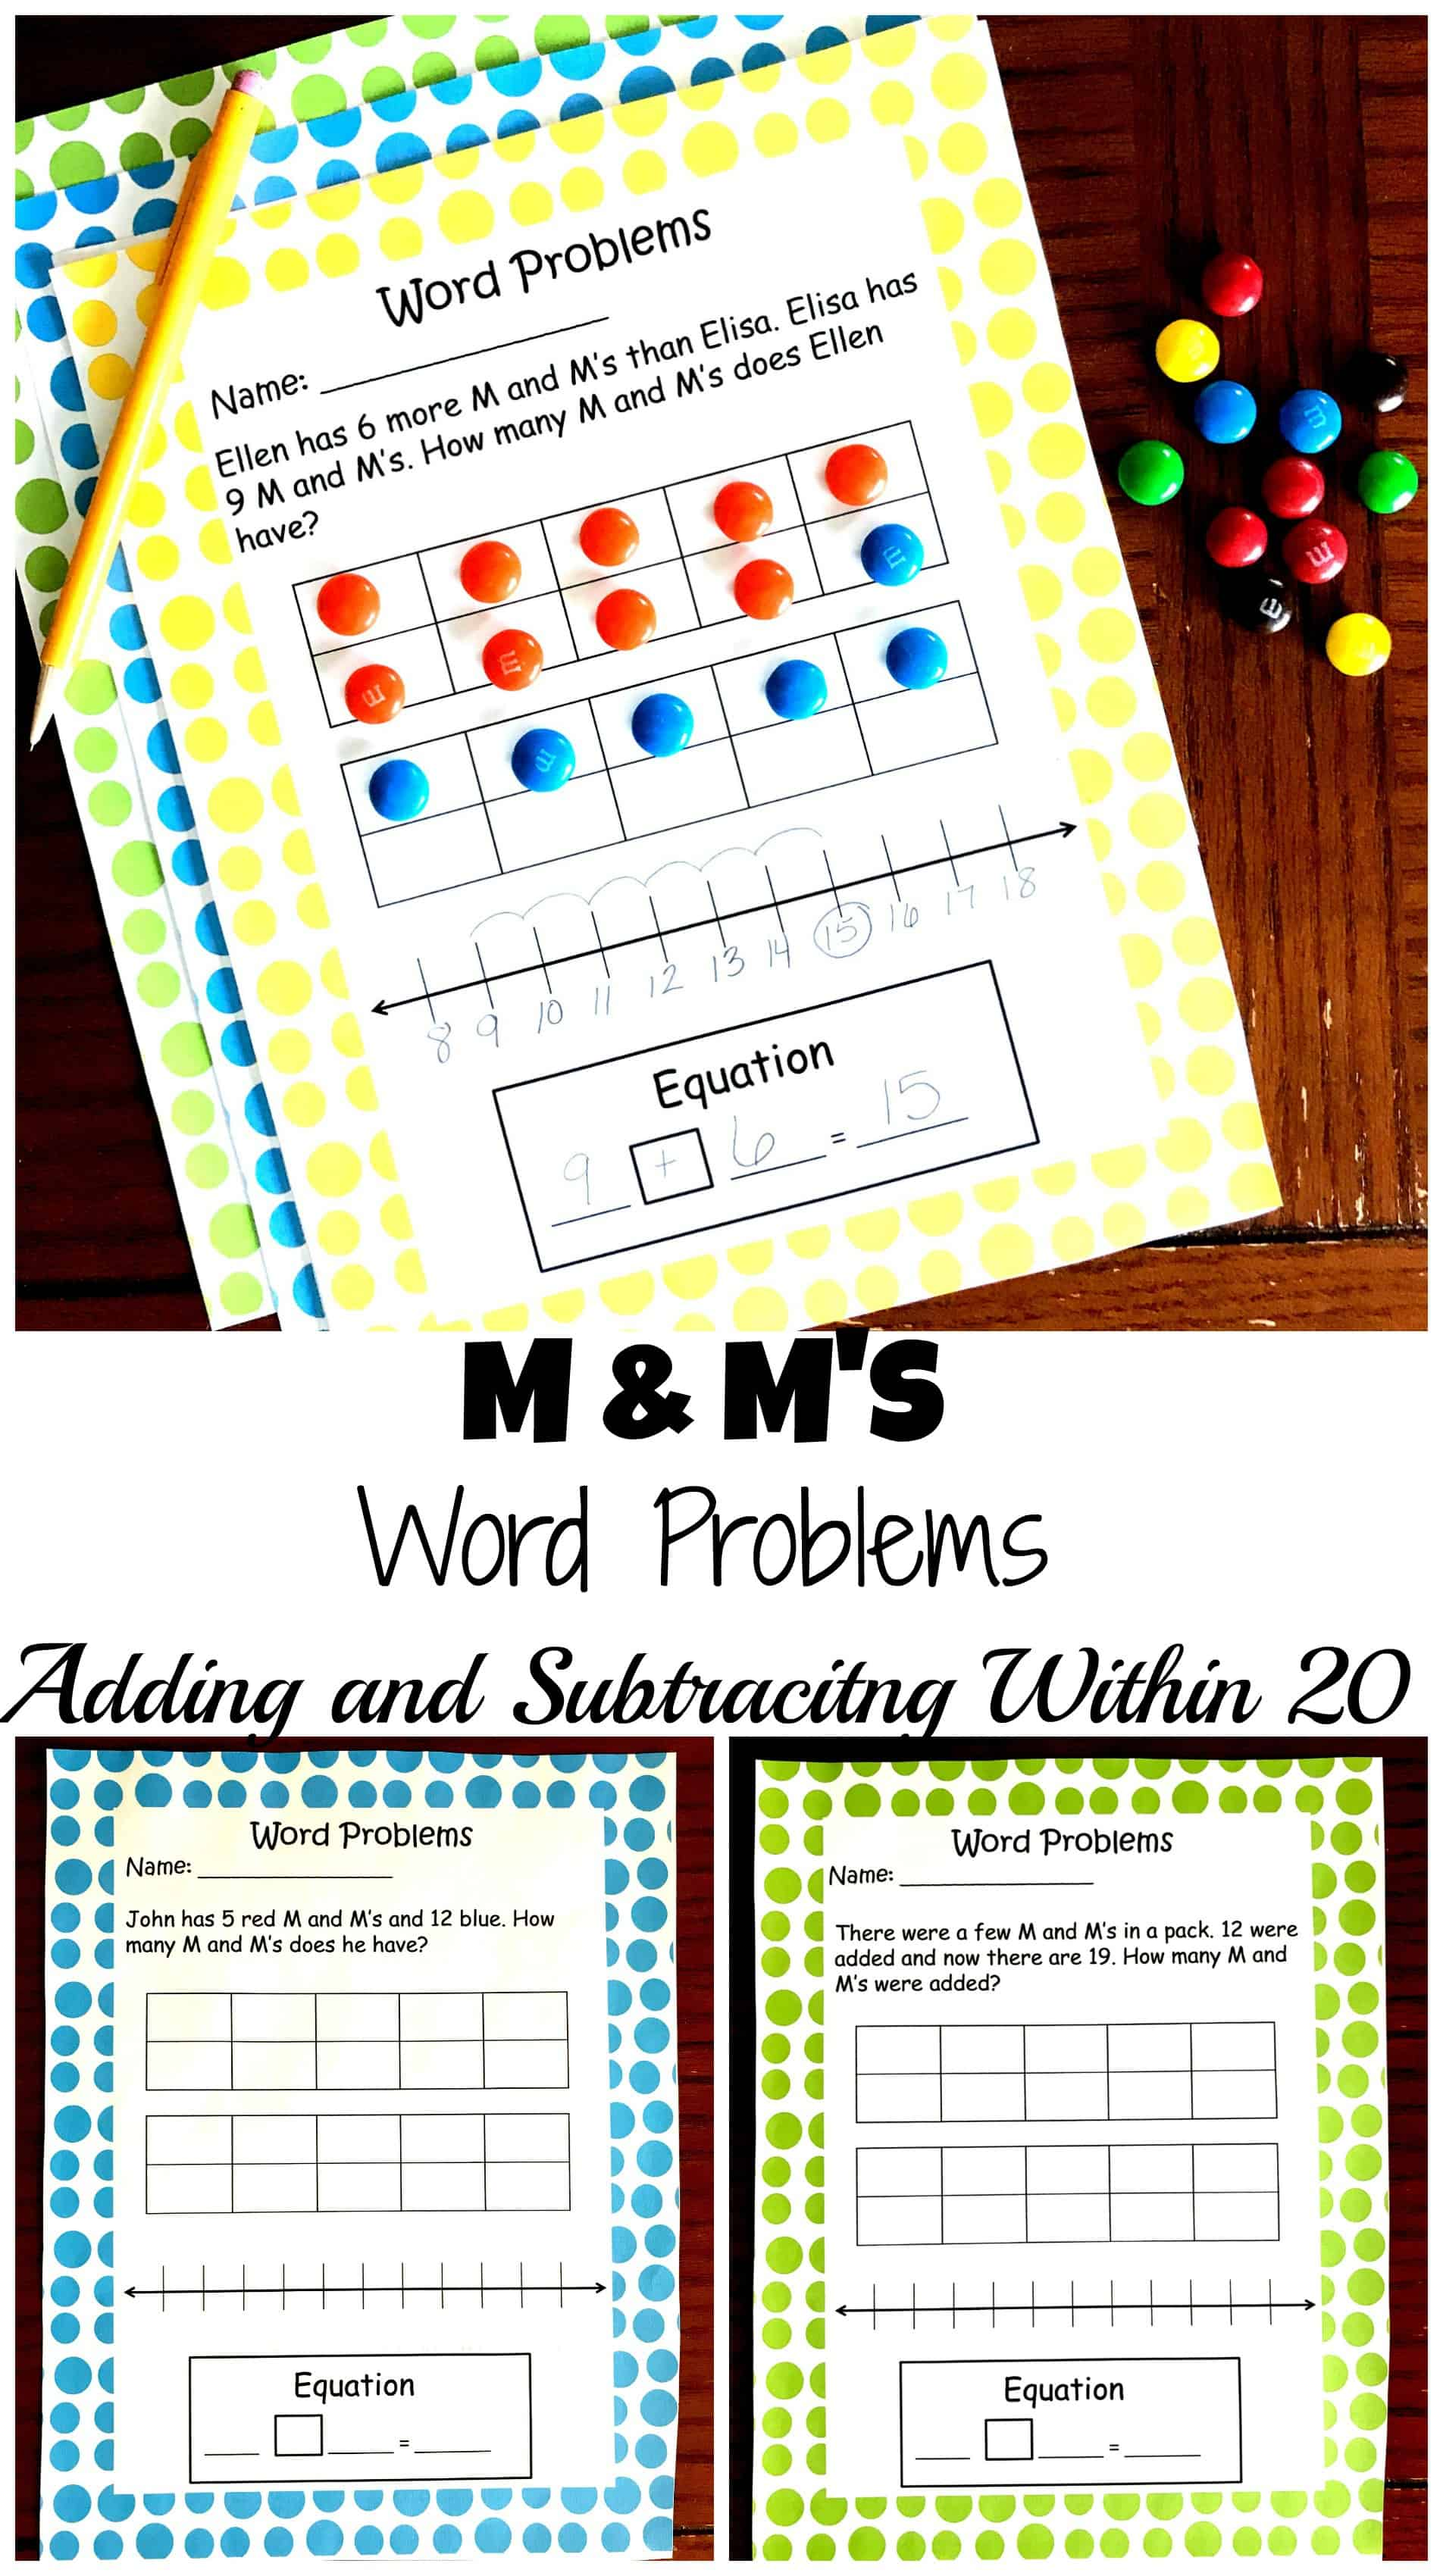 hight resolution of 5 Free M \u0026 M Word Problems to Practice Adding and Subtracting Within 20